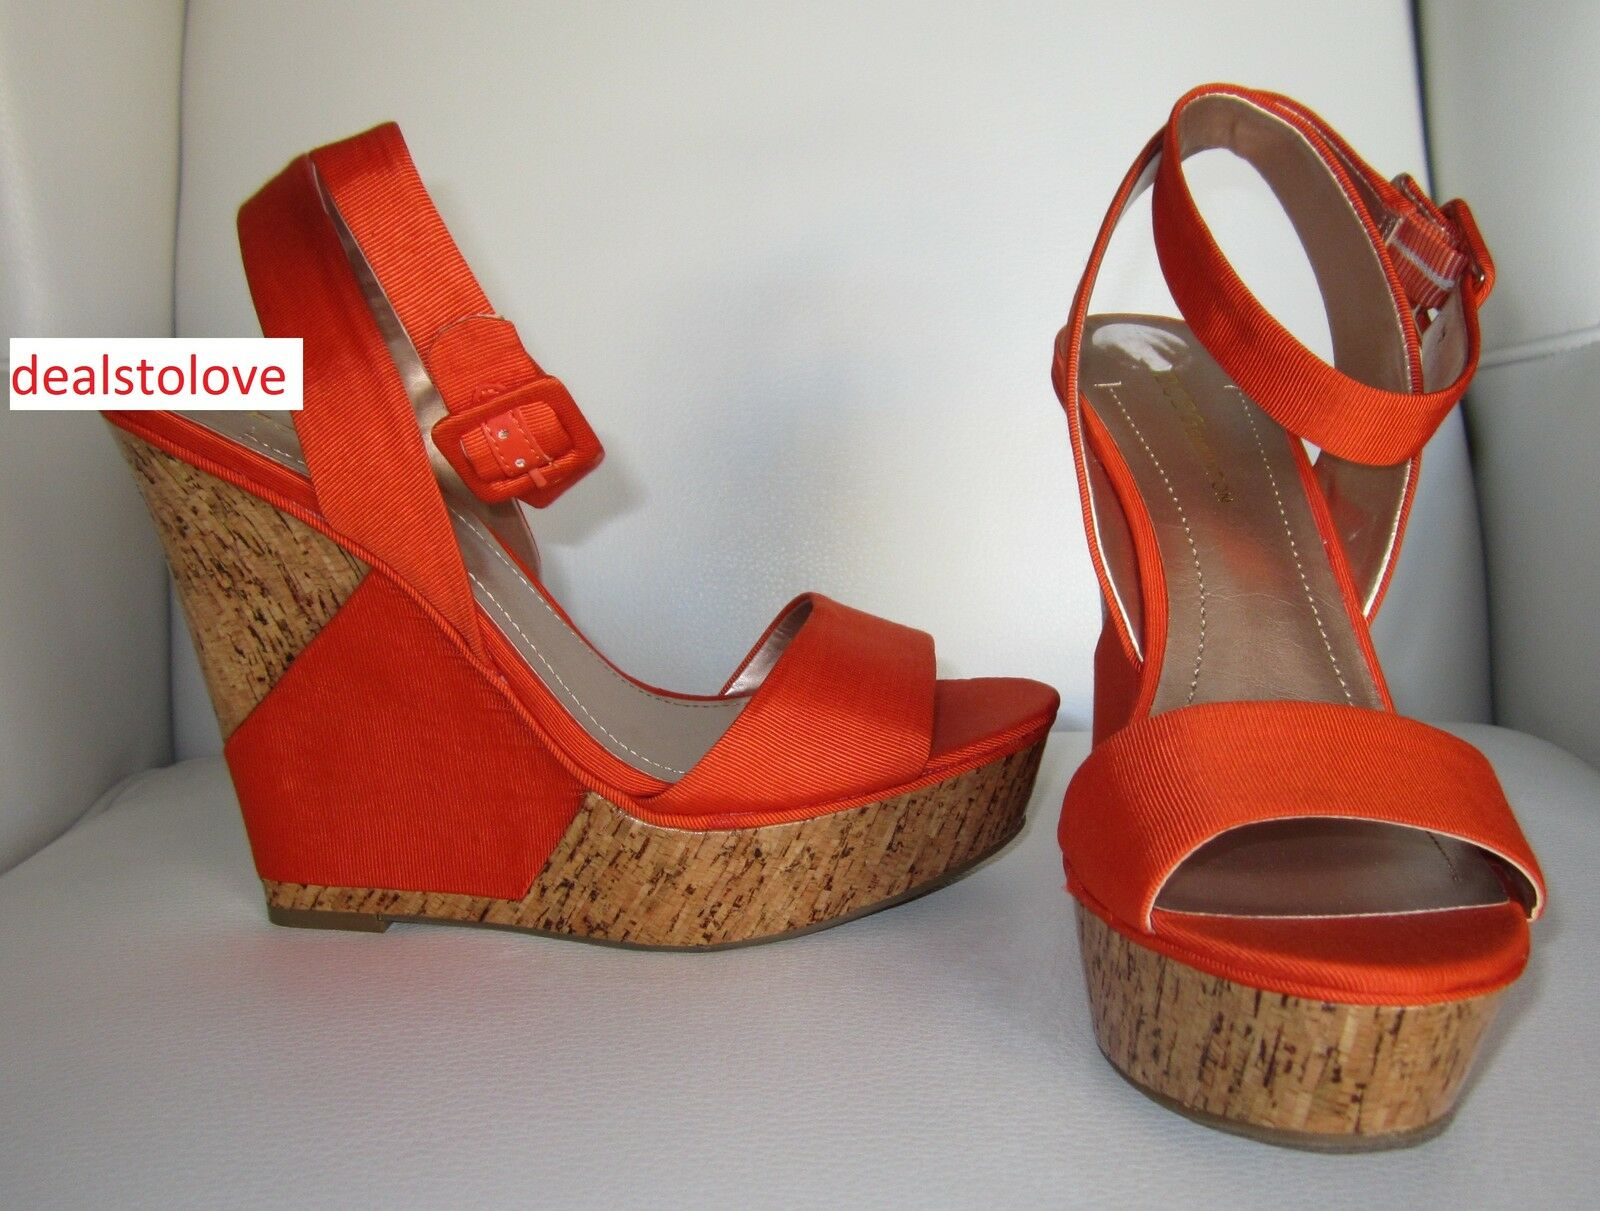 NEW BCBG BCBGeneration High heel Platform Wedge Bright 7 Orange Cork schuhe Sz 7 Bright 11f49a